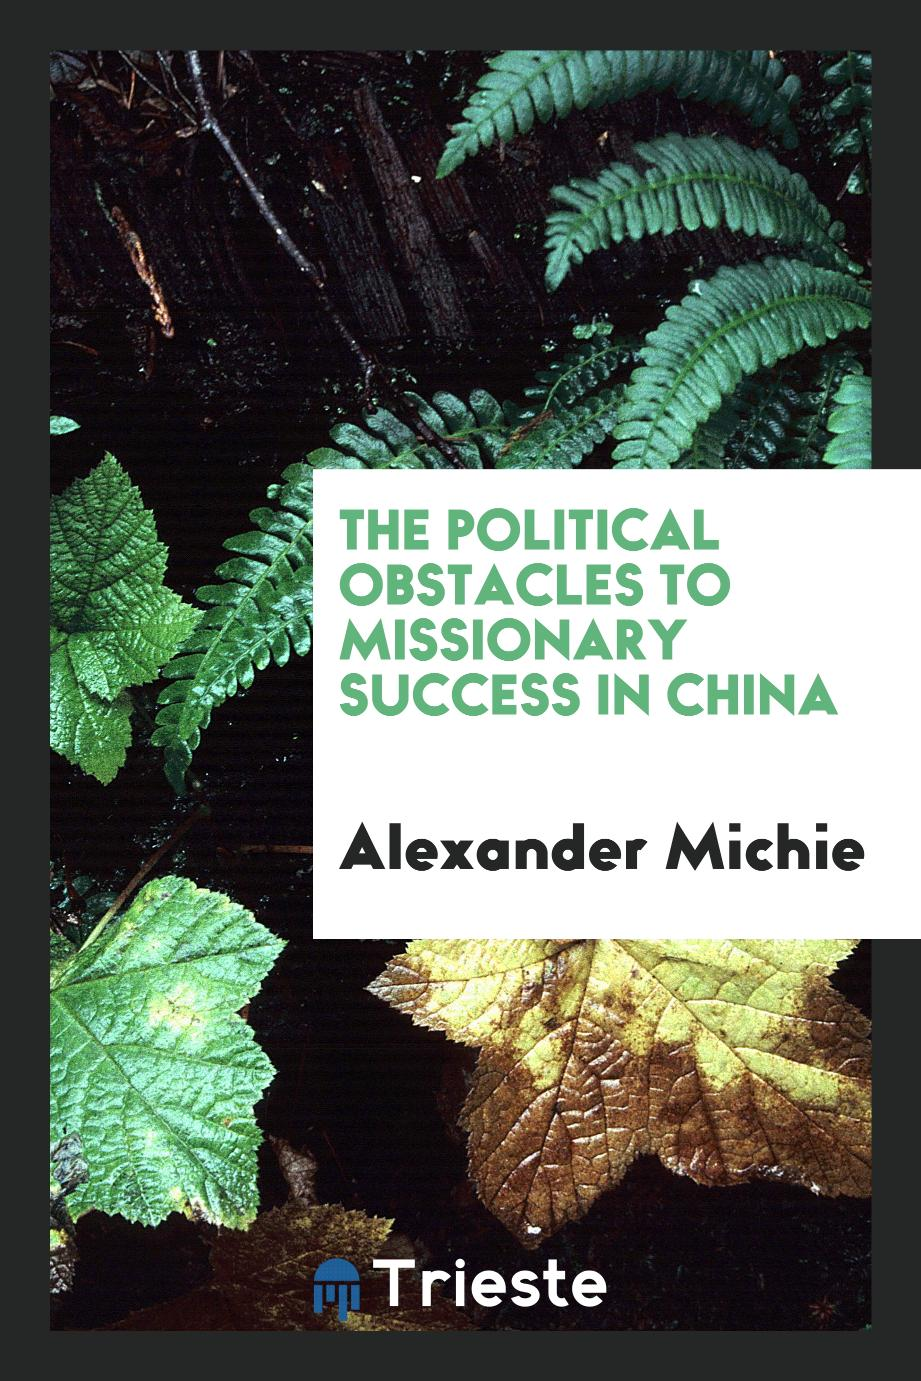 The Political Obstacles to Missionary Success in China